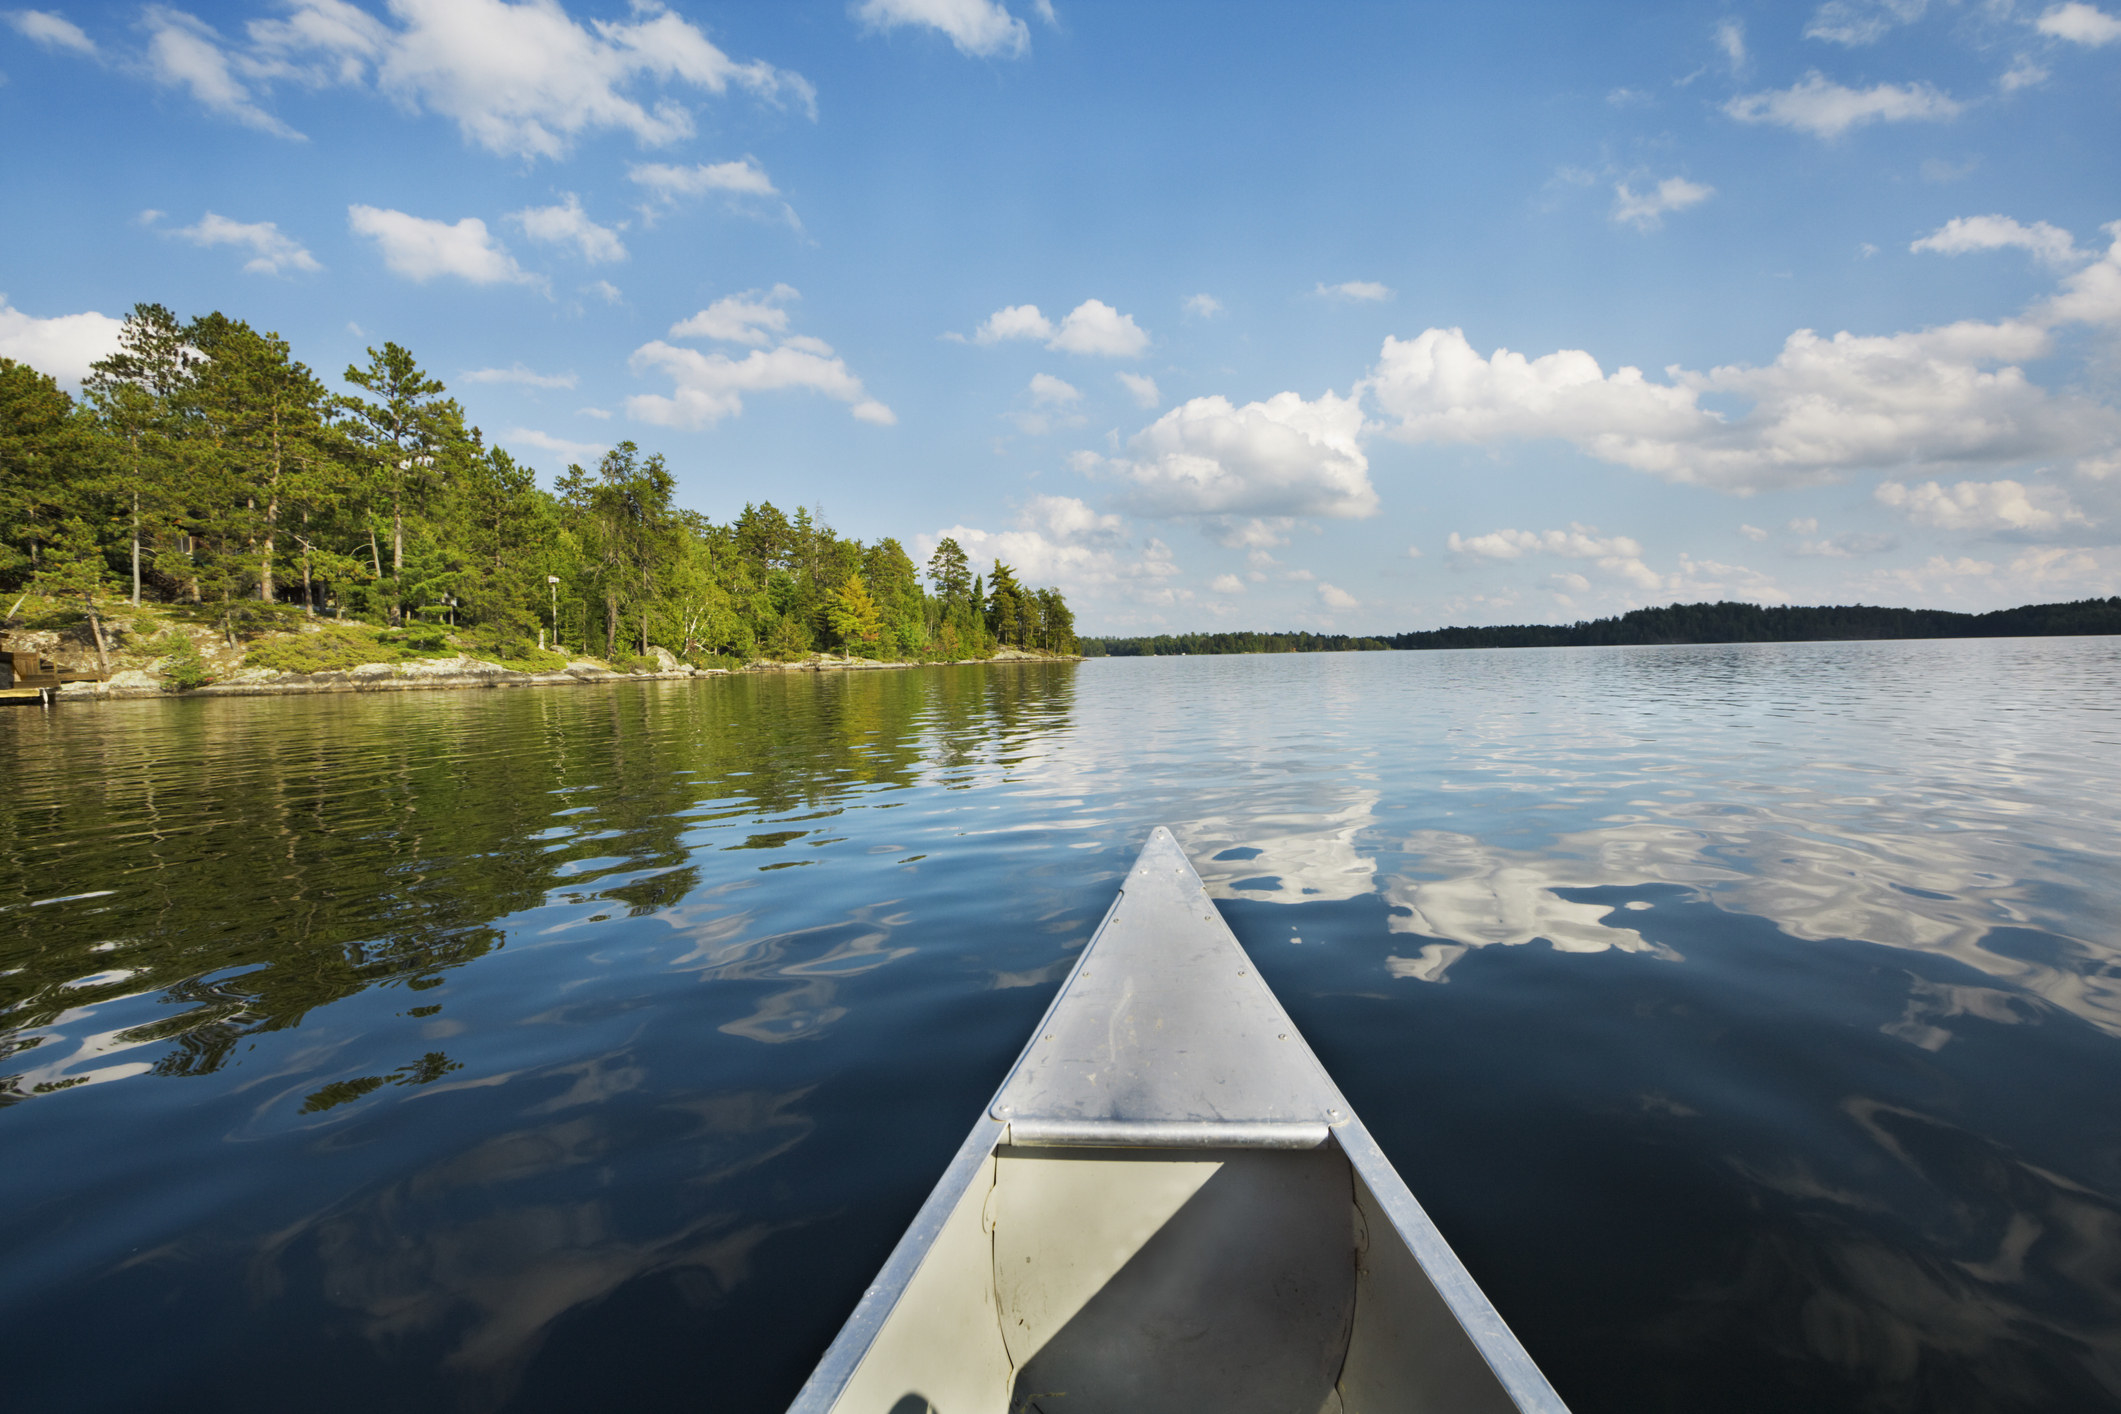 A POV shot of a canoe floating across water with a tree-lined island to the left and a blue sky above